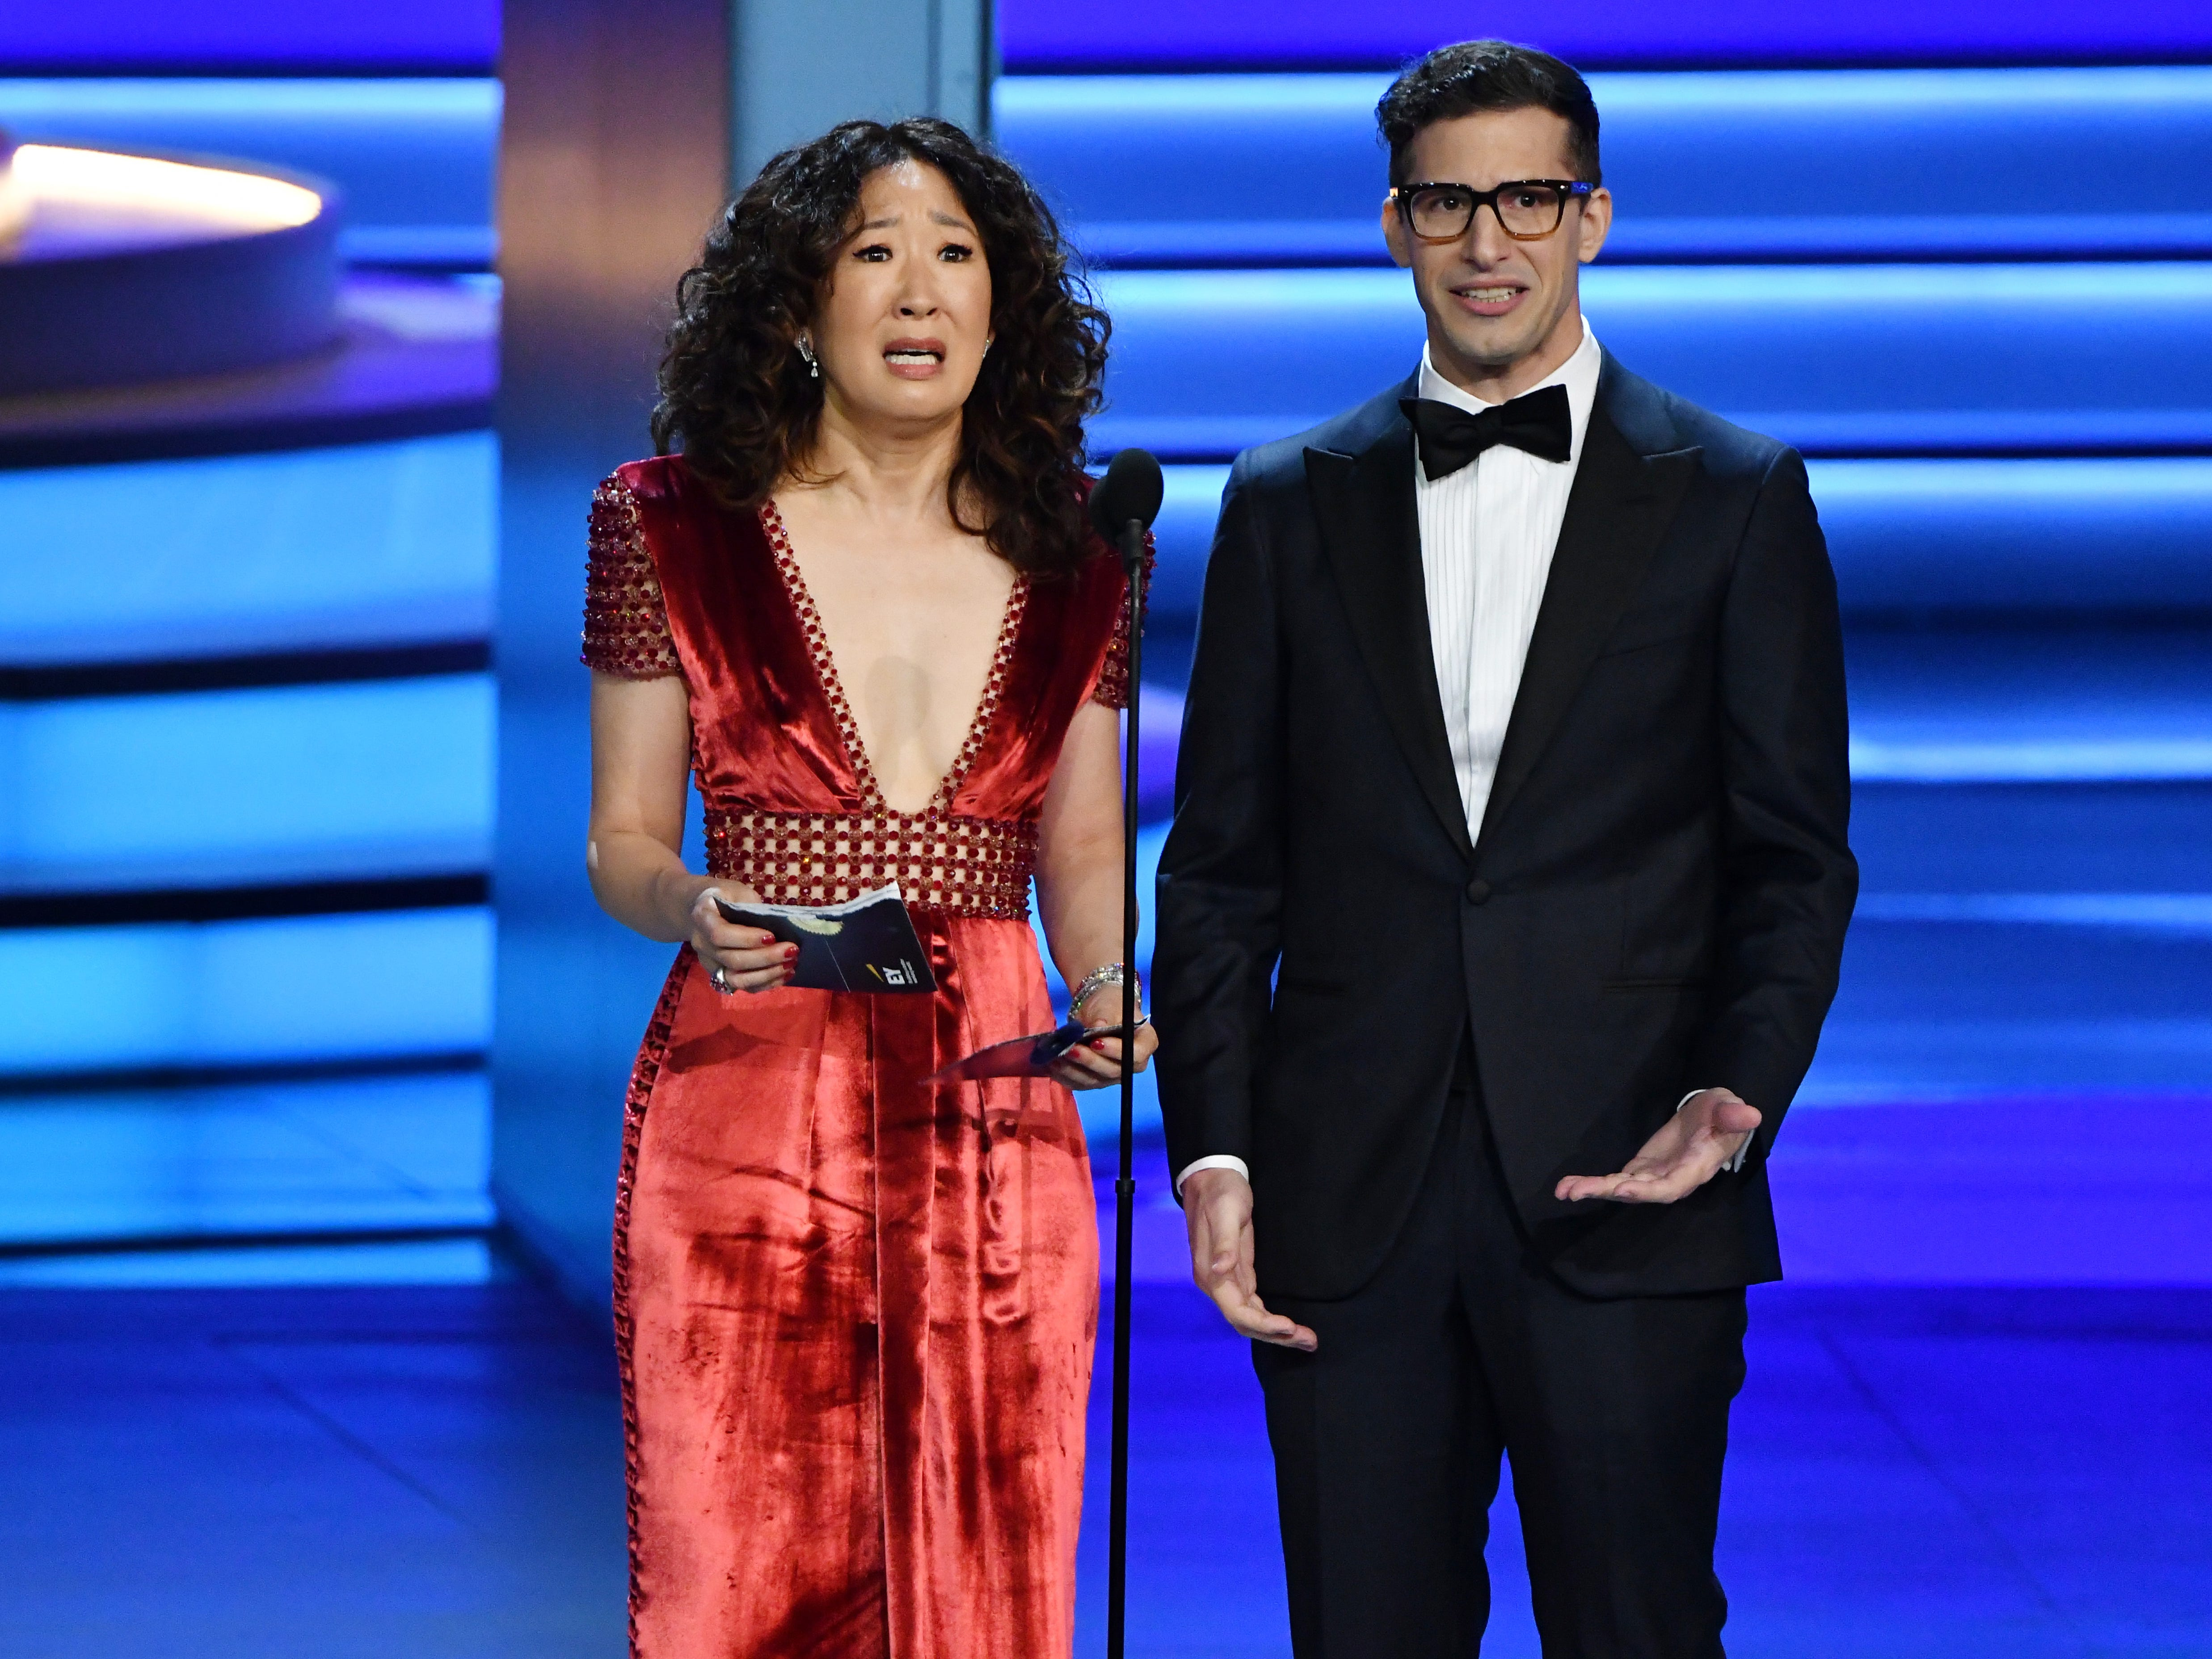 Sandra Oh and Andy Samberg present the award for outstanding directing for a comedy series.